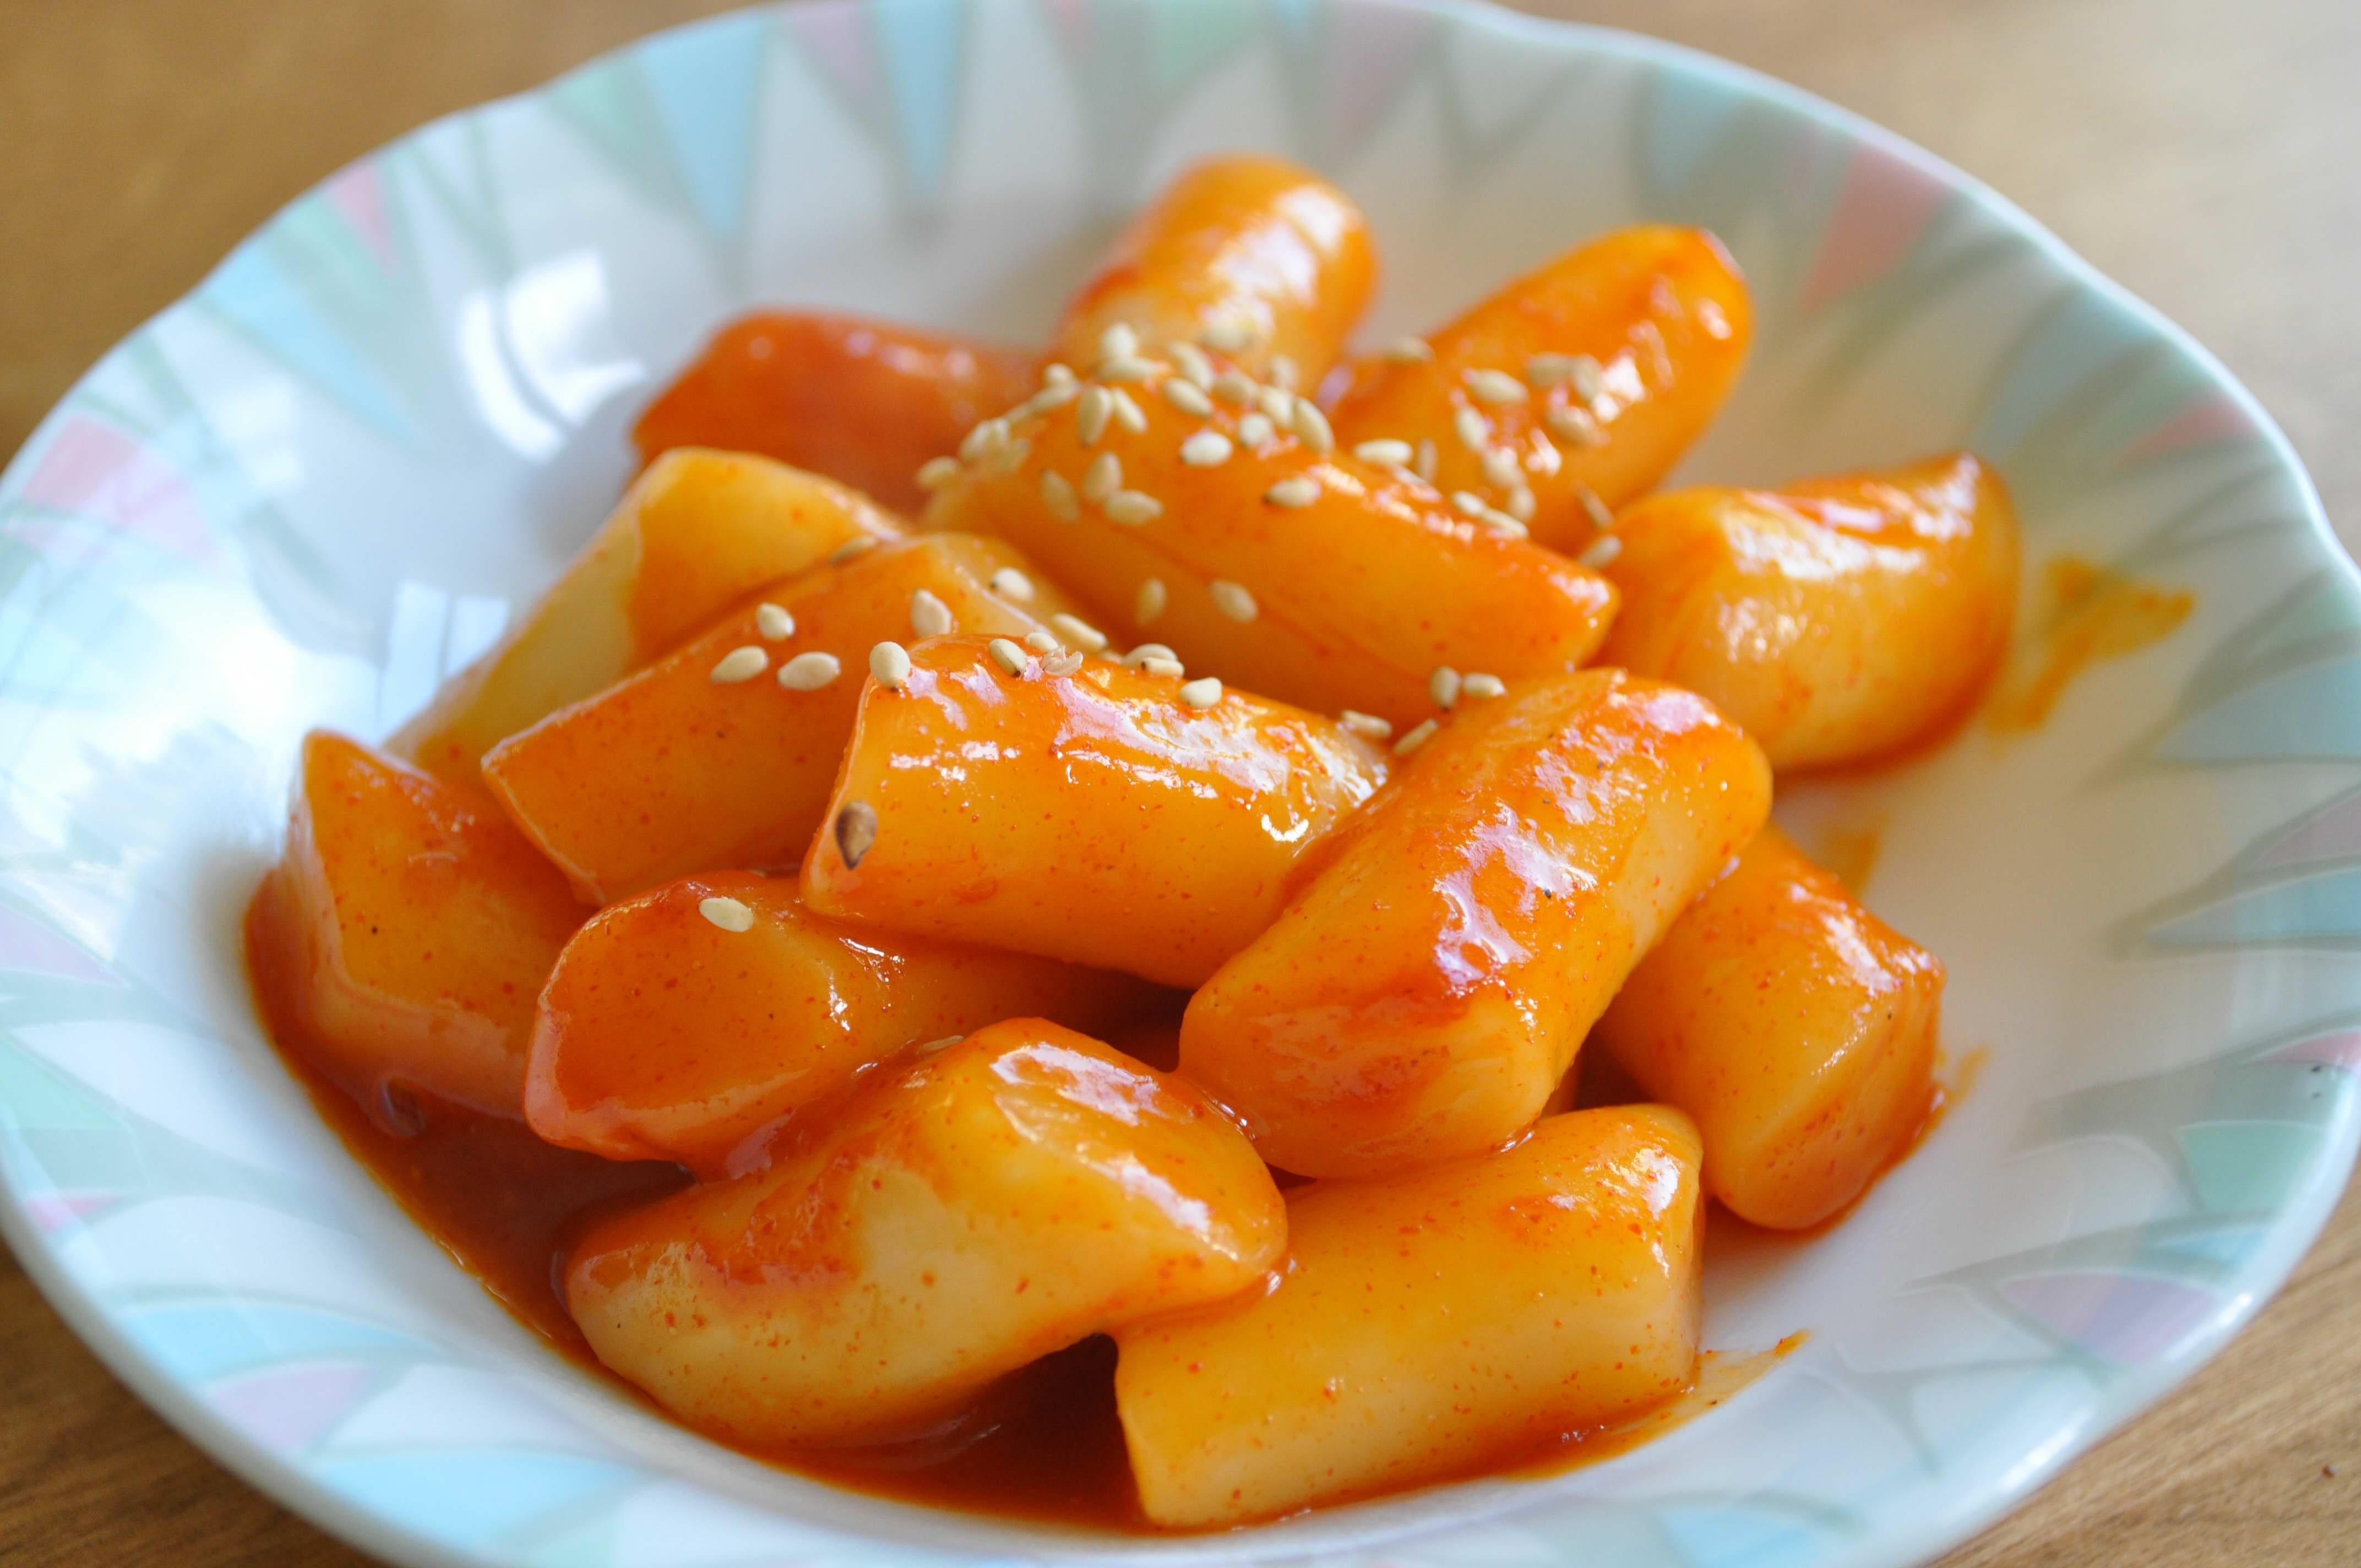 Korean Rice Cake Recipe Gochujang: Ddukbokki (Korean Spicy Rice Cake)